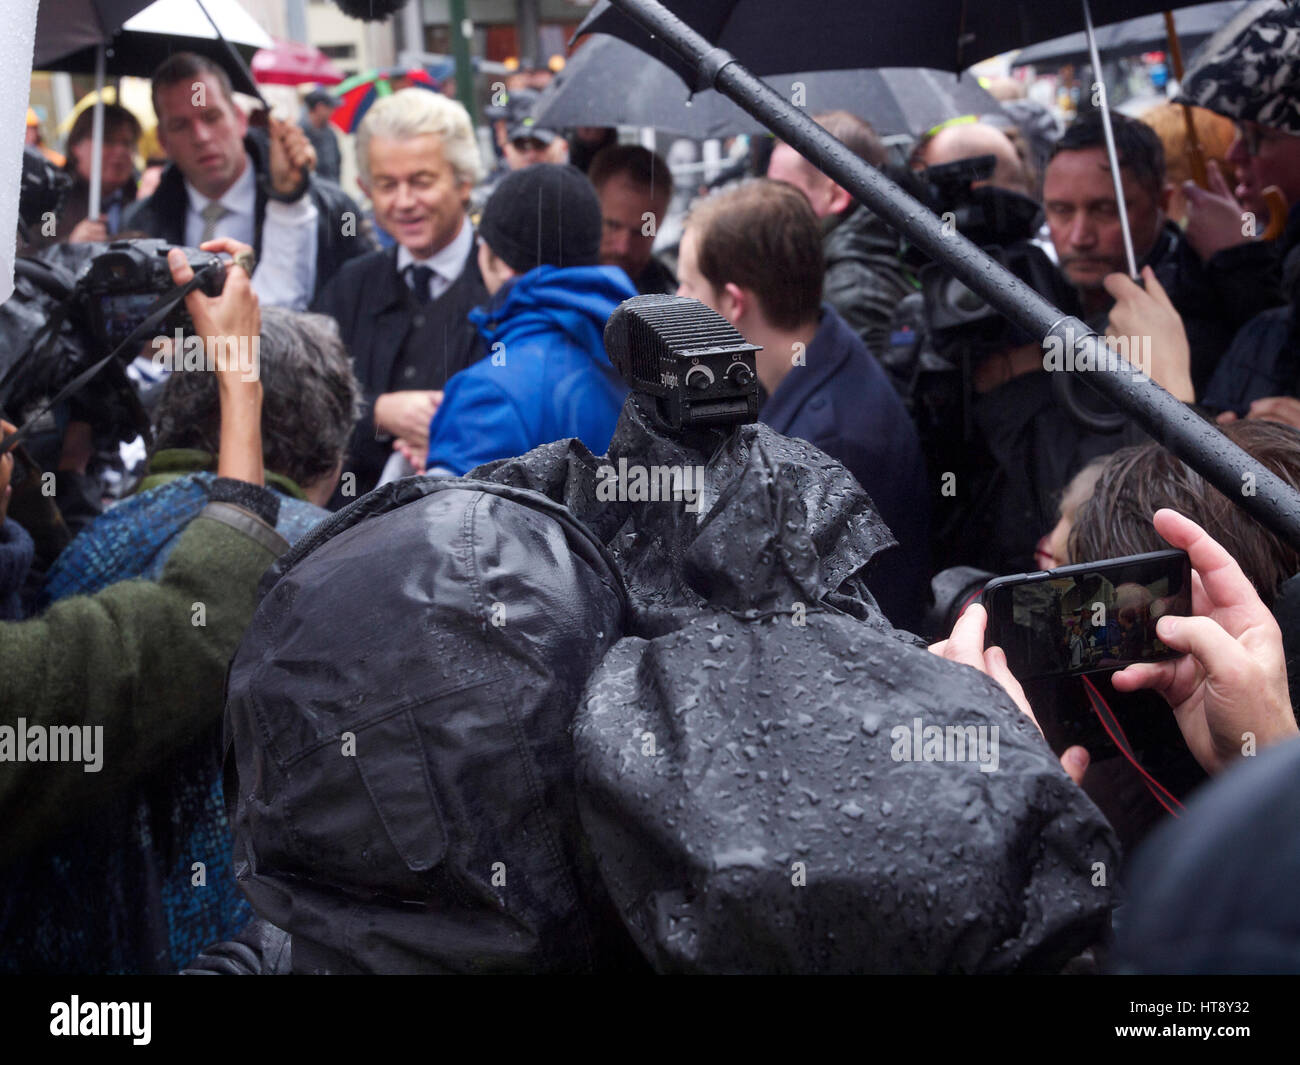 Dutch populist party PVV political leader Geert Wilders in Breda, surrounded by news reporters and bodyguards. - Stock Image